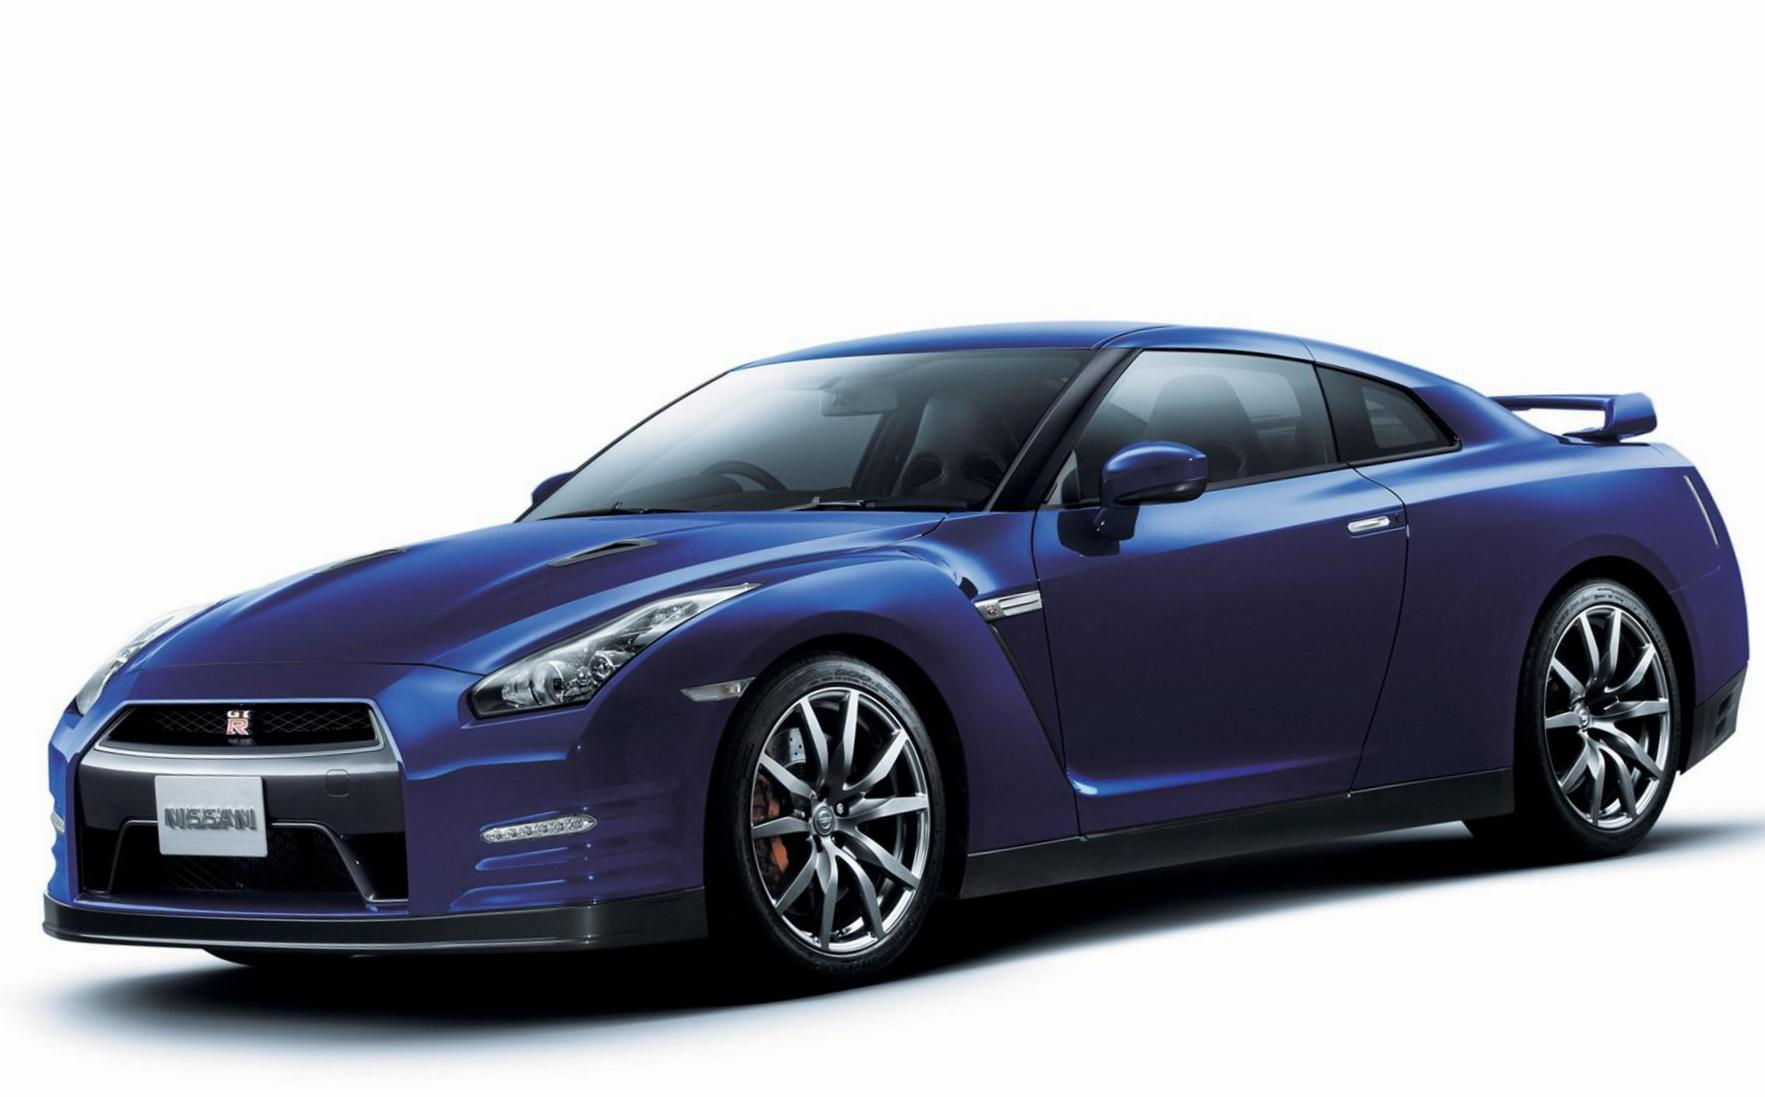 GT-R Nissan parts hatchback